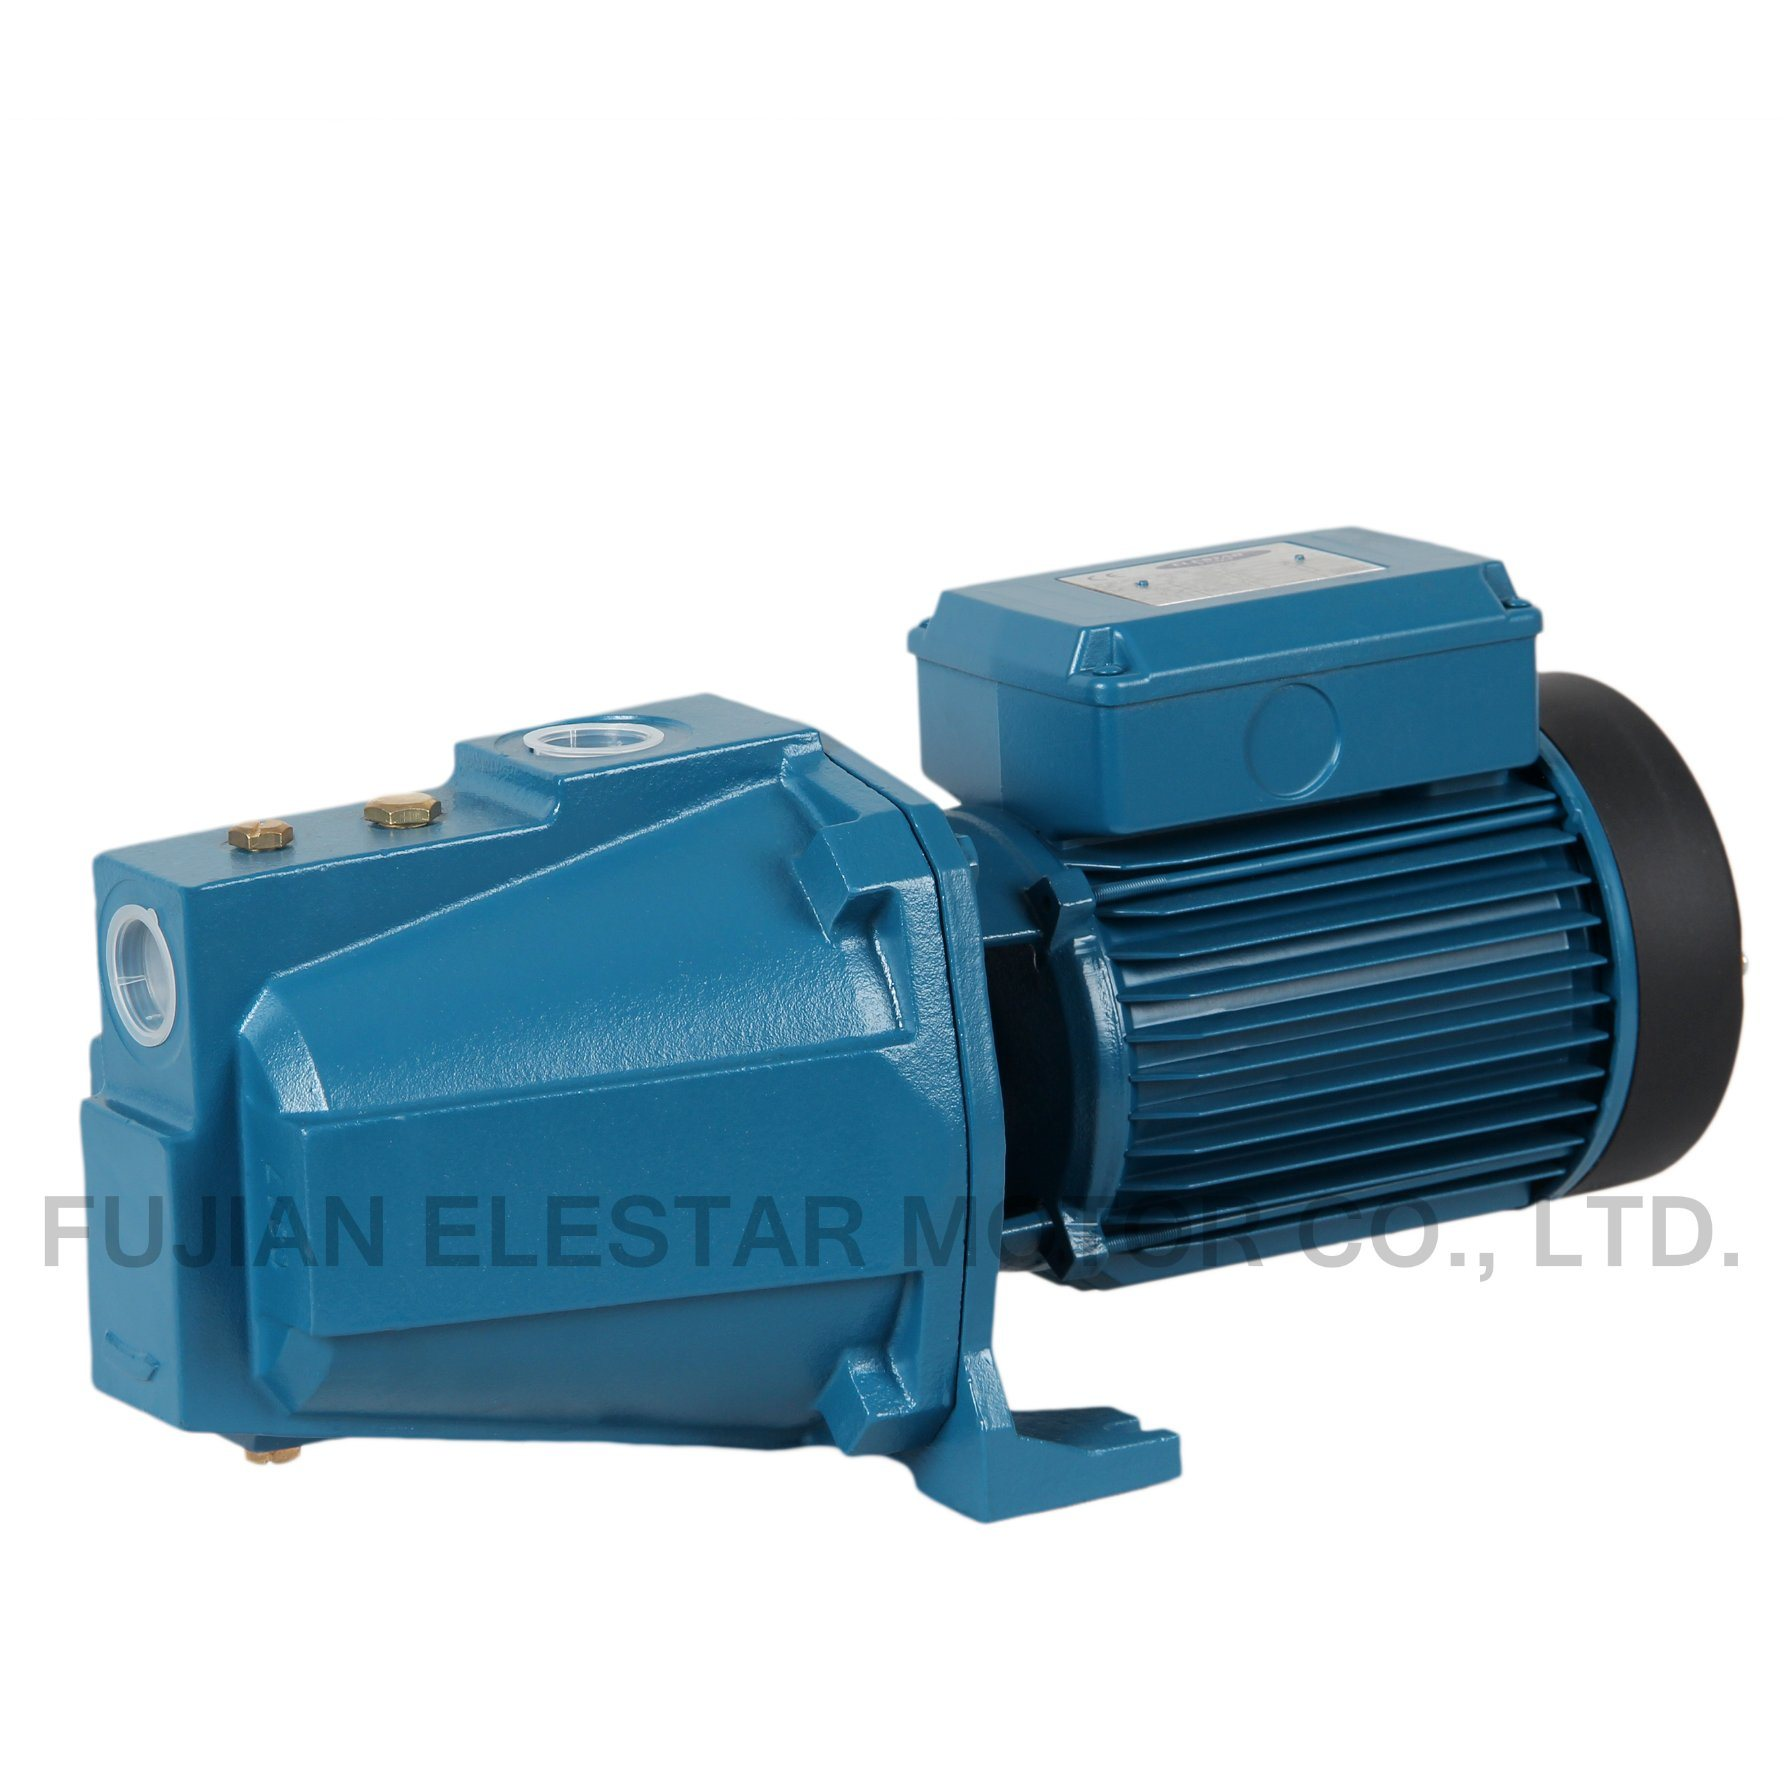 Jng Series Ce Approved Self-Priming Water Pump for Clean Water